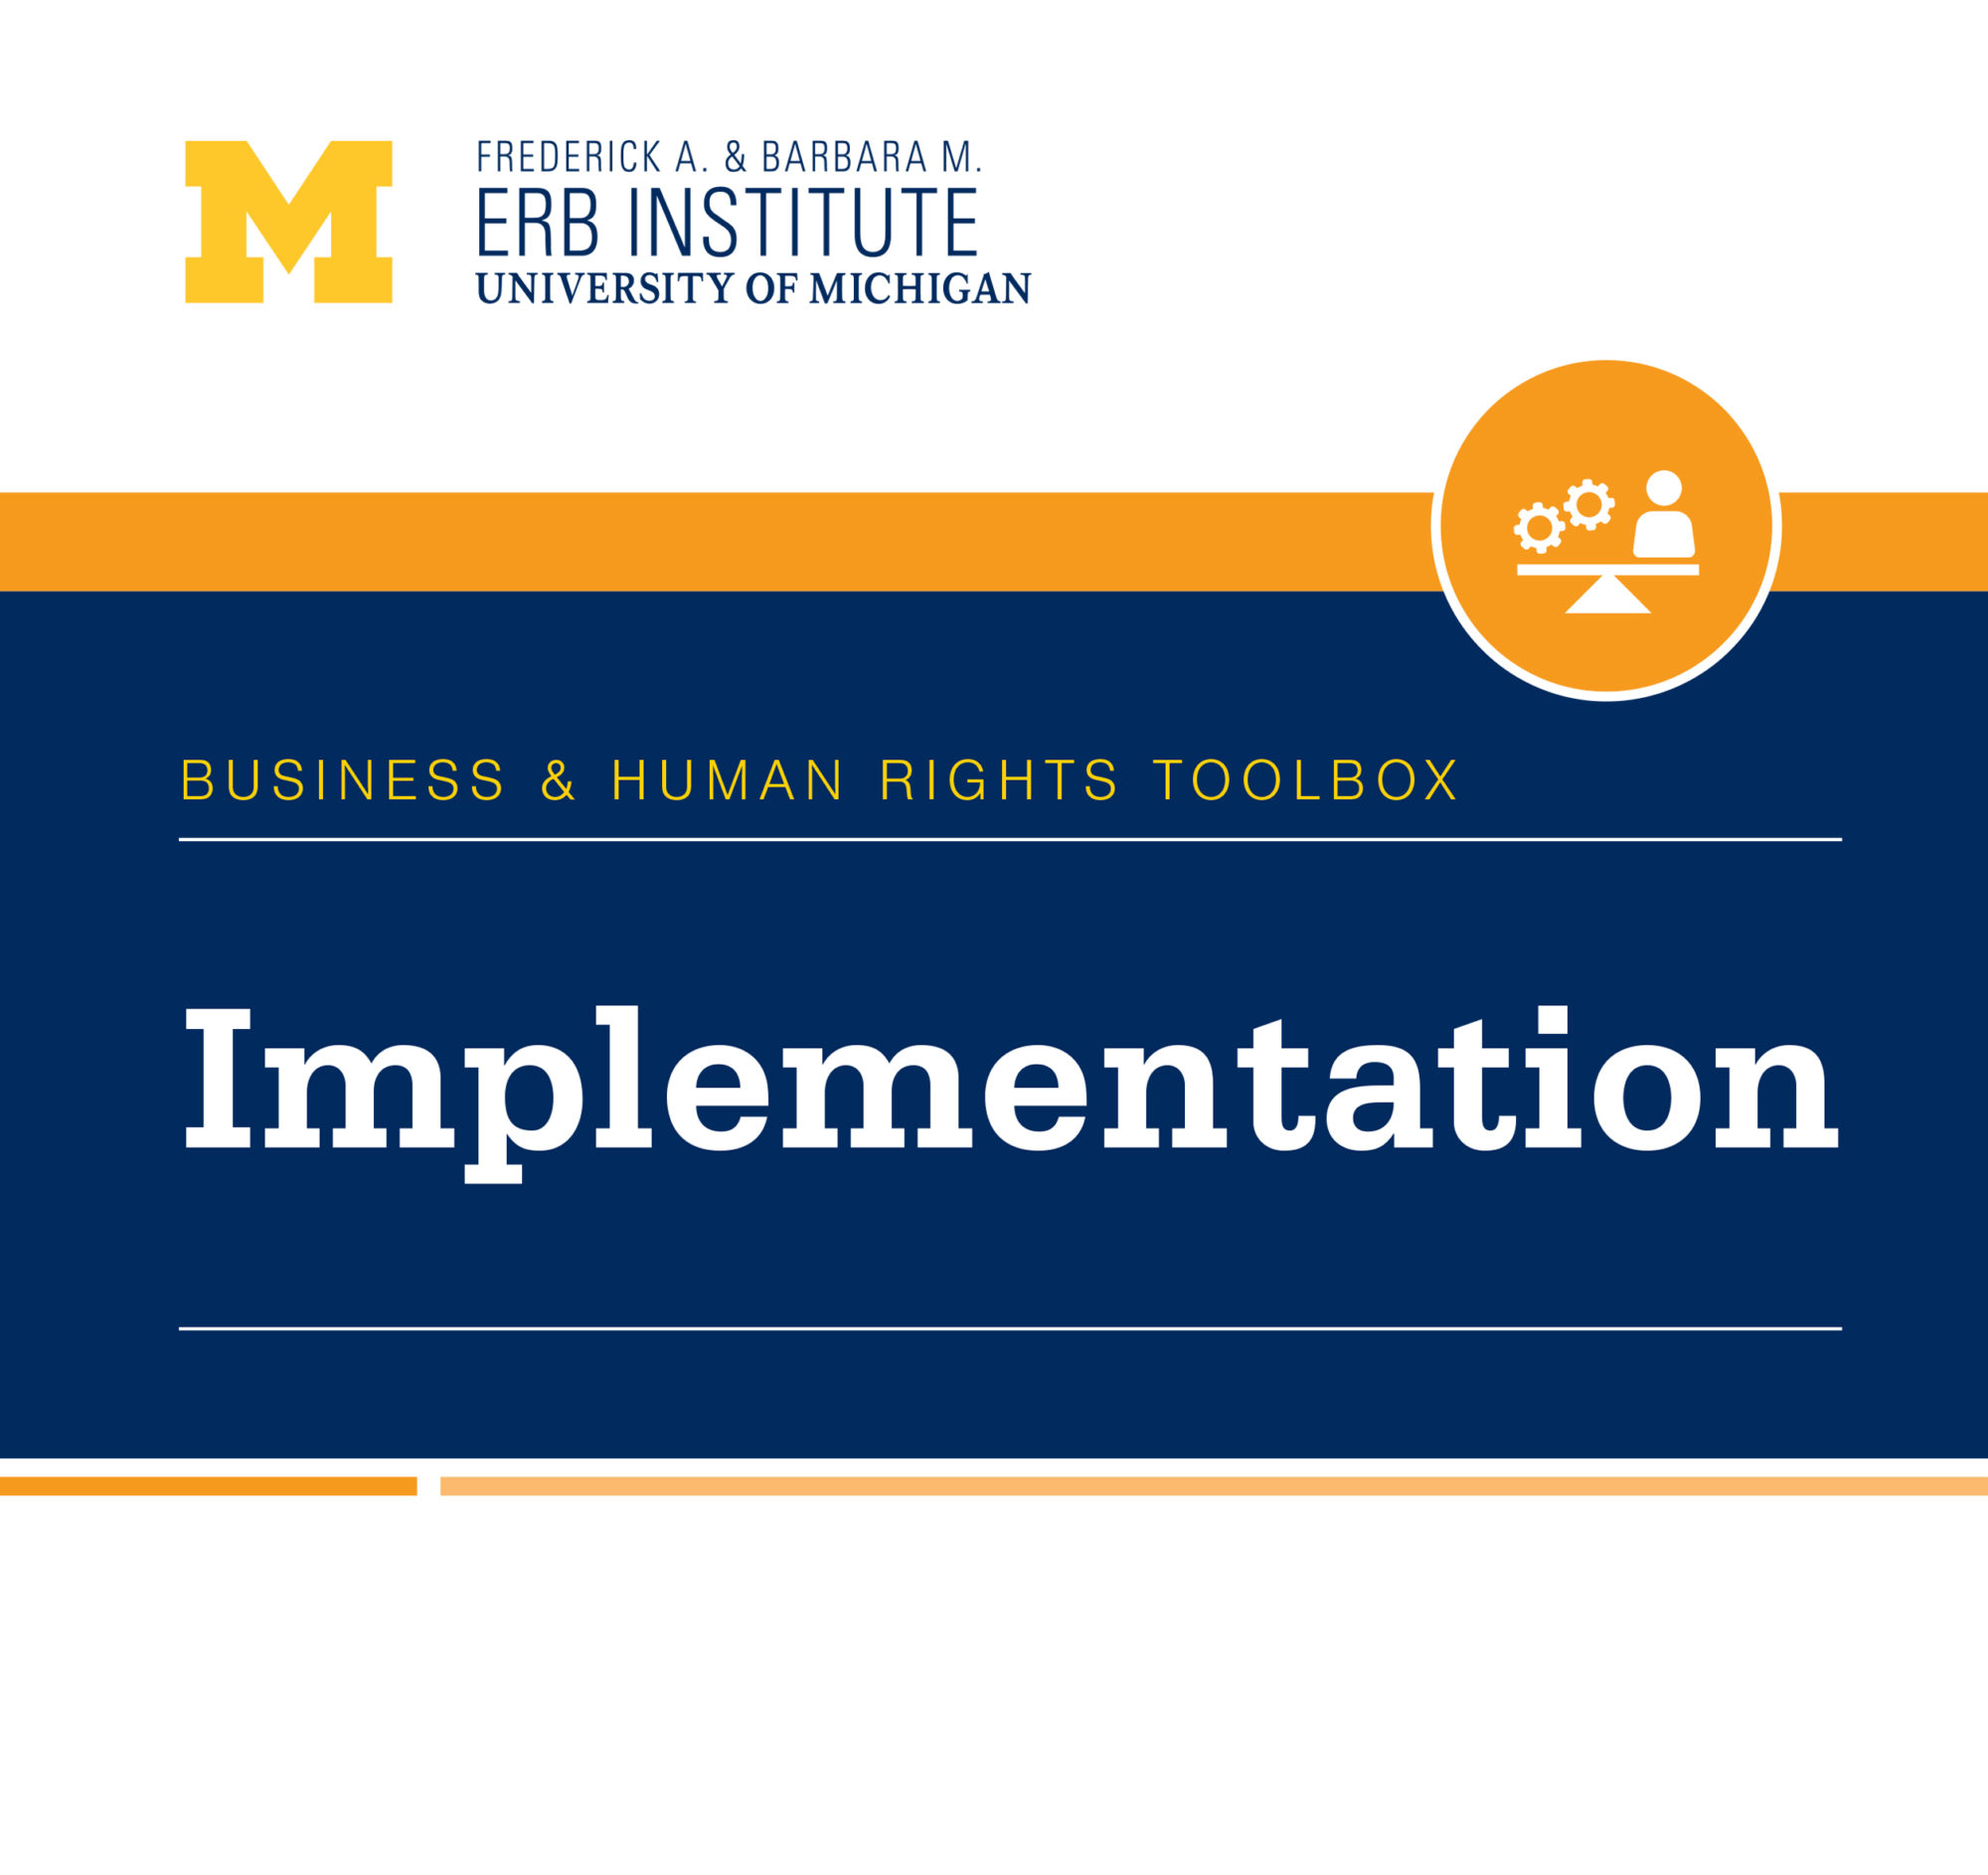 Business & Human Rights Toolbox: Implementation